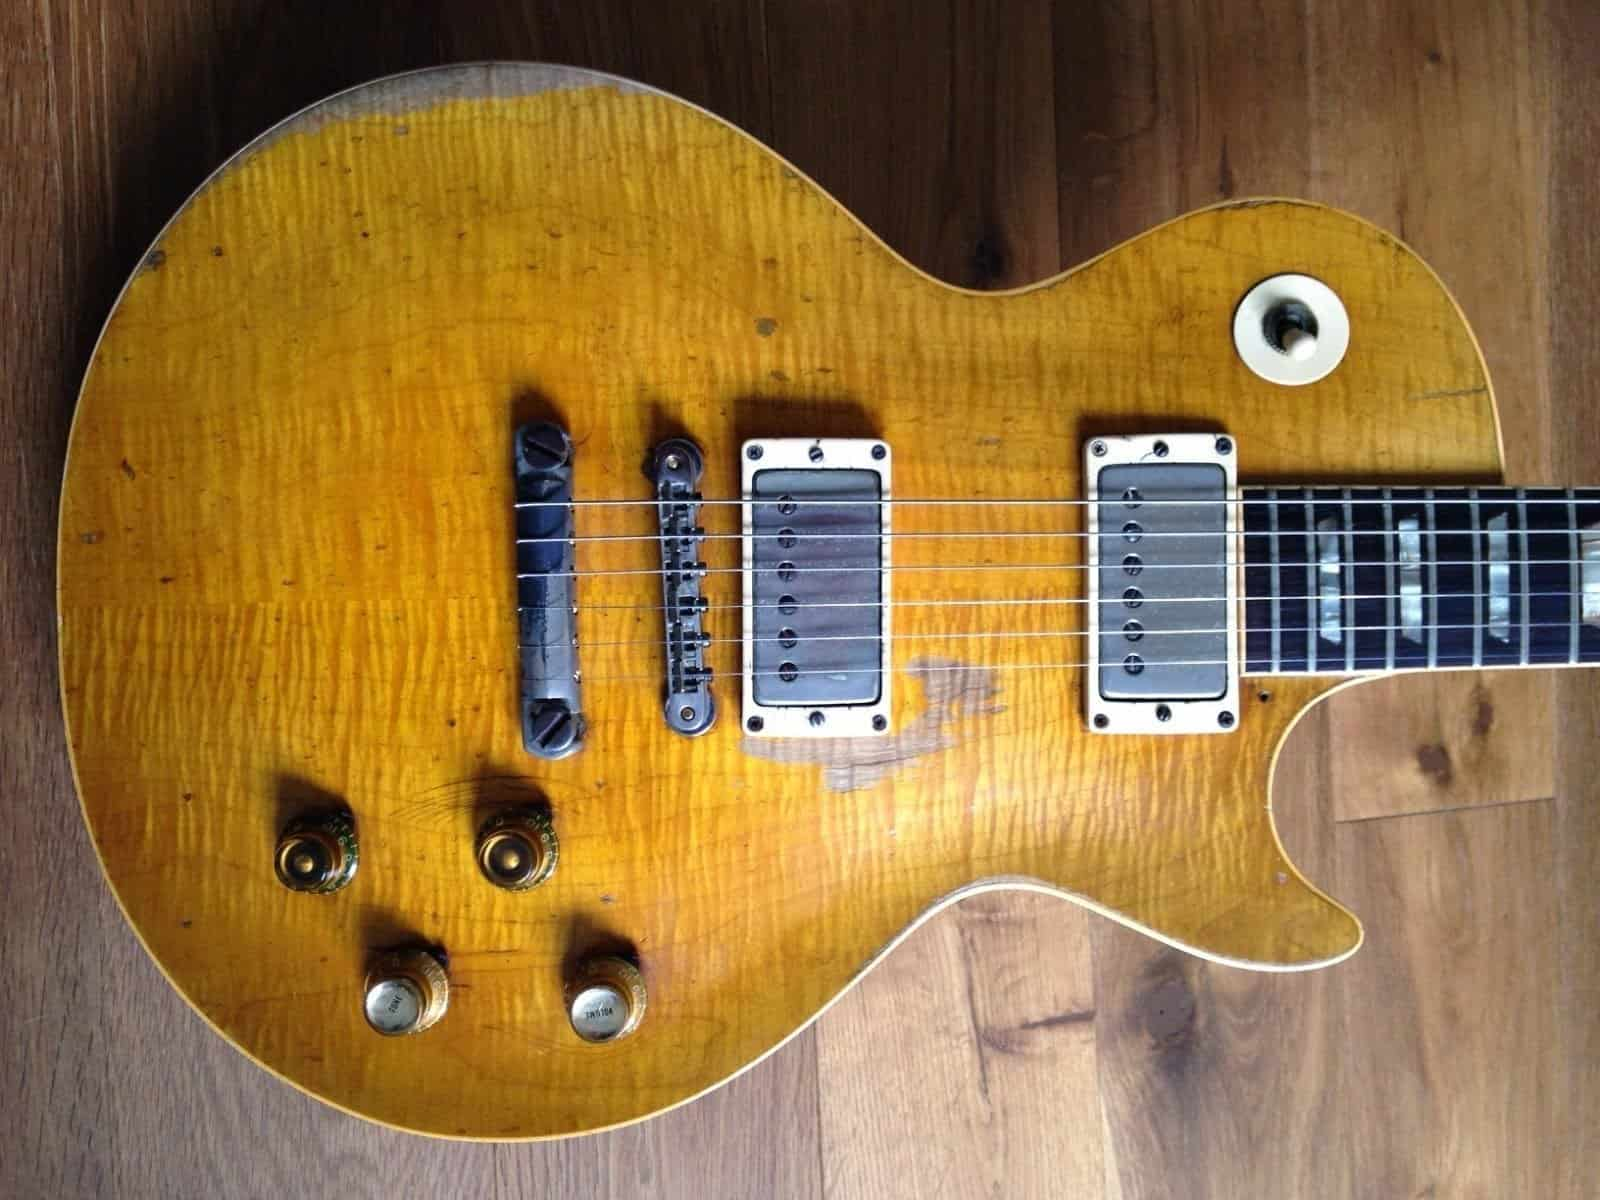 #1 Most Expensive Guitar: Peter Green/Gary Moore's 1959 Les Paul